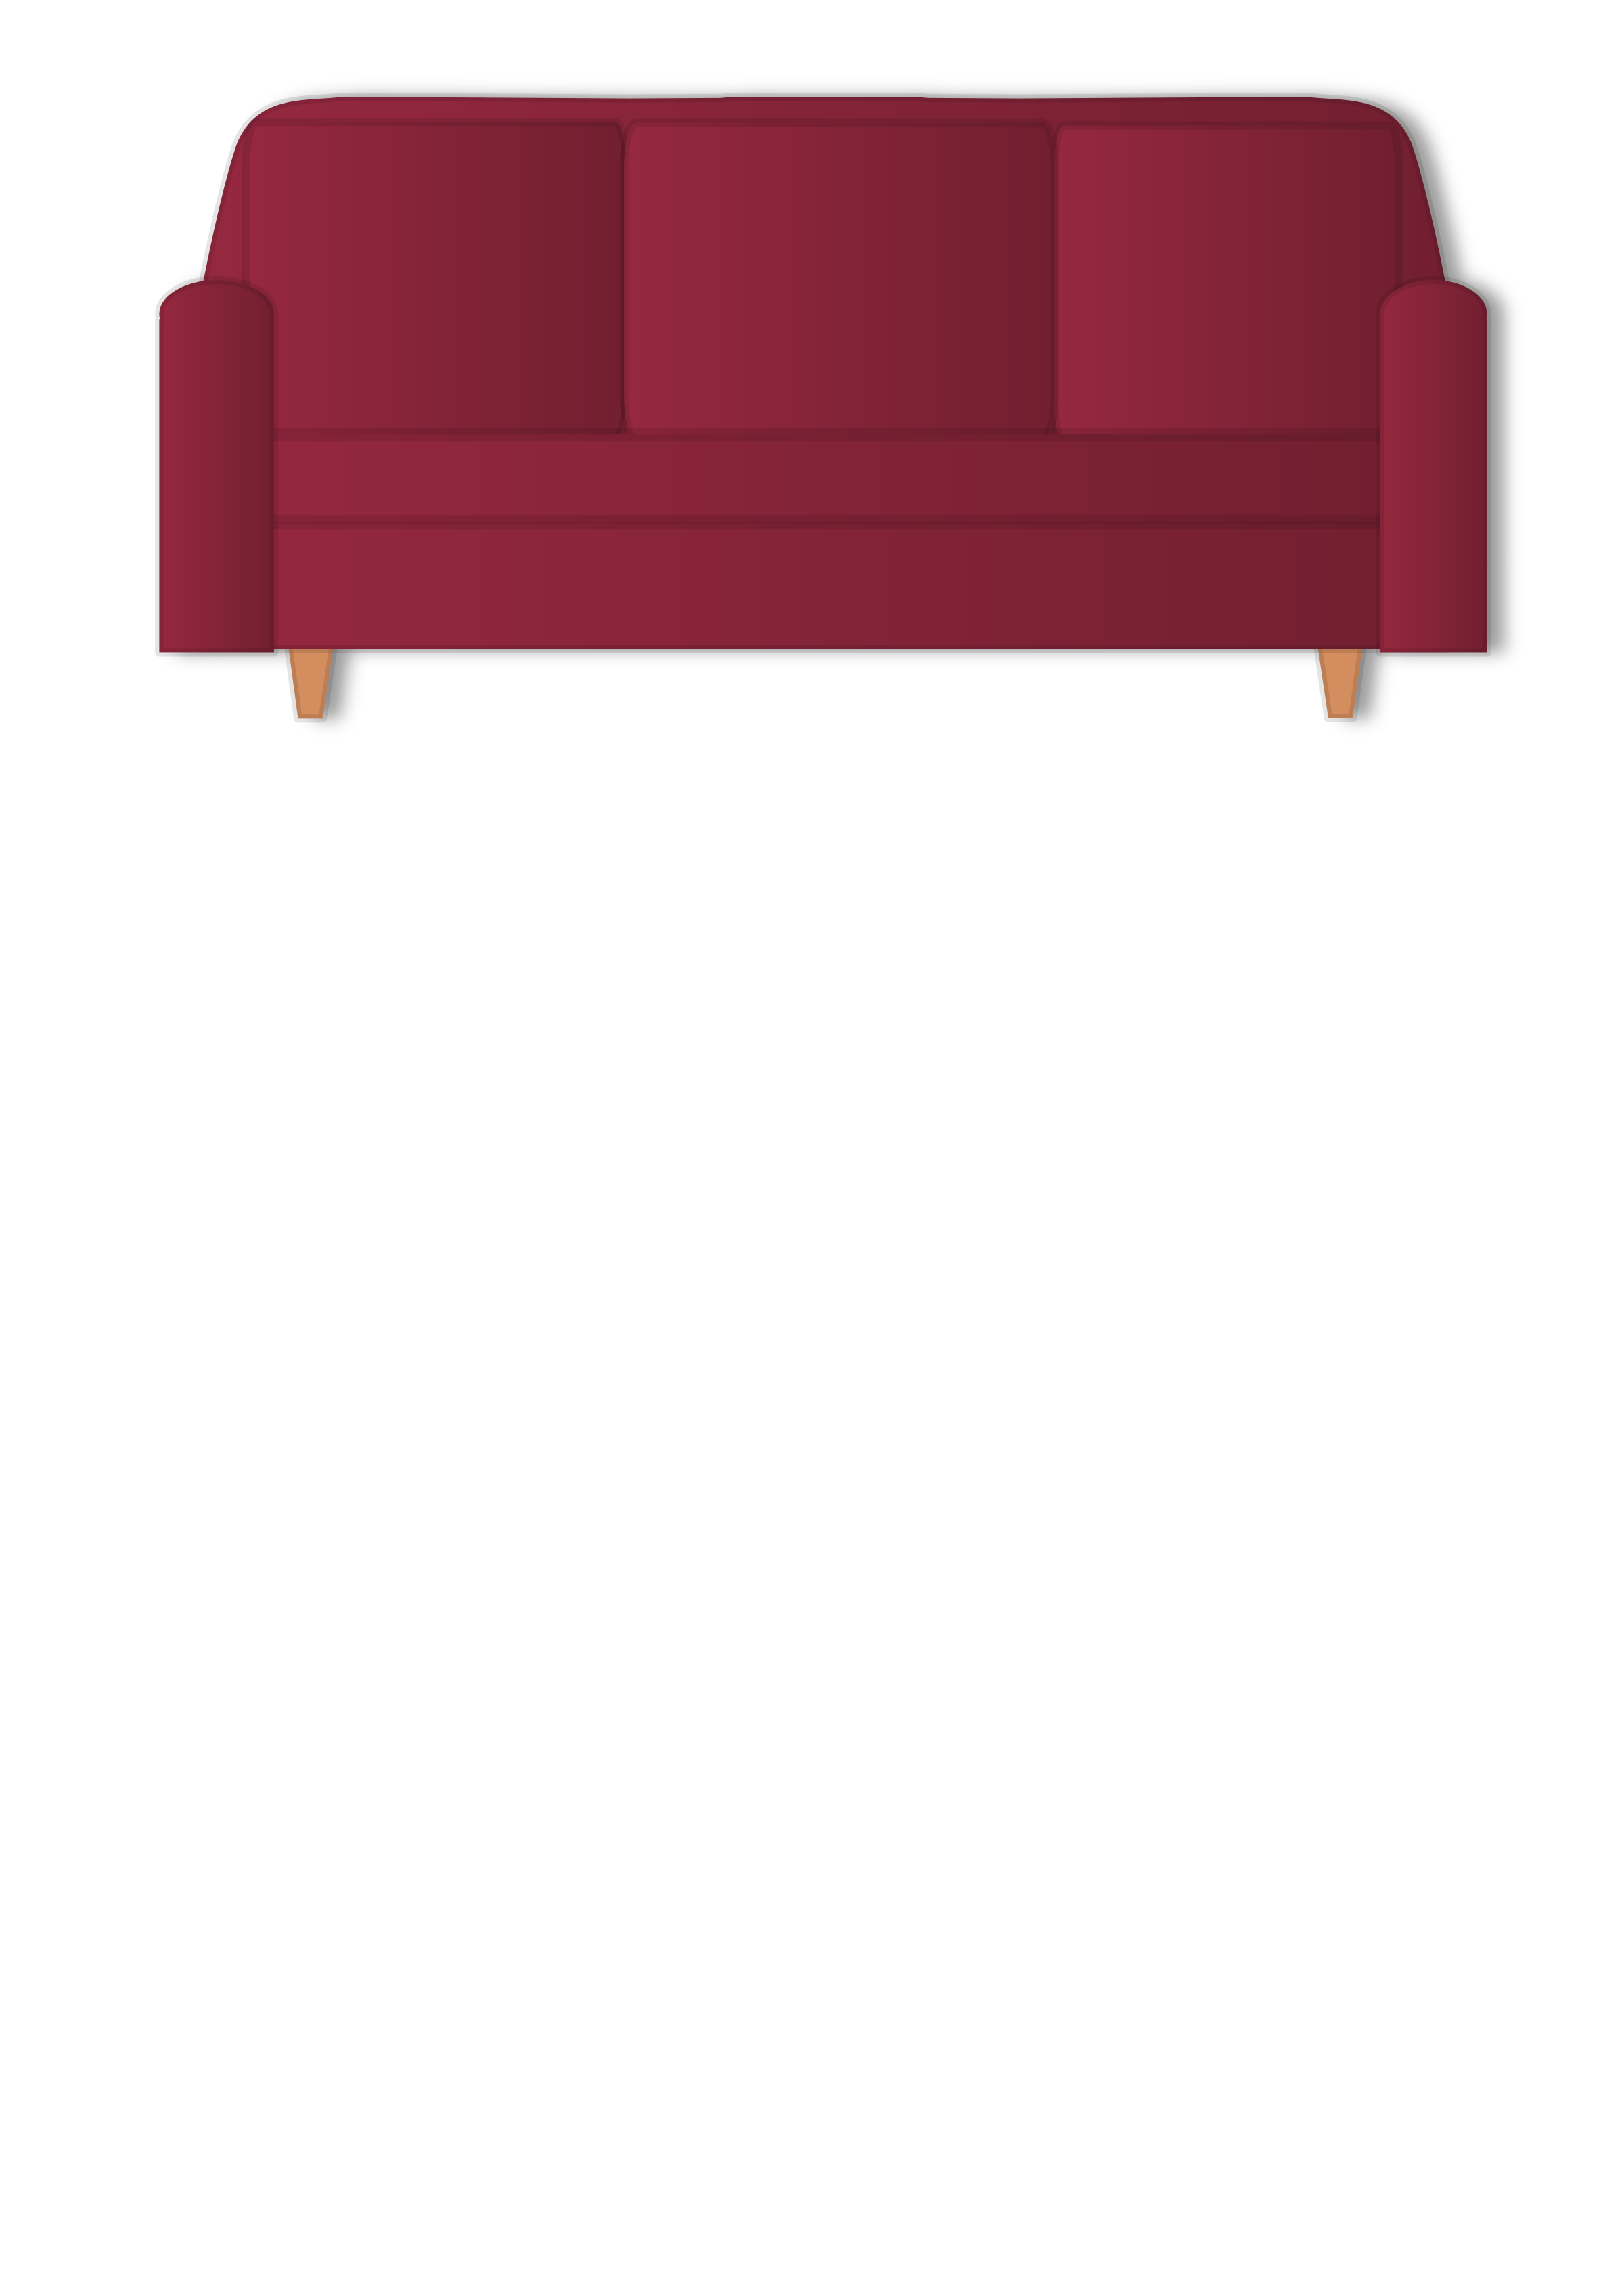 Red Couch by yalnifj